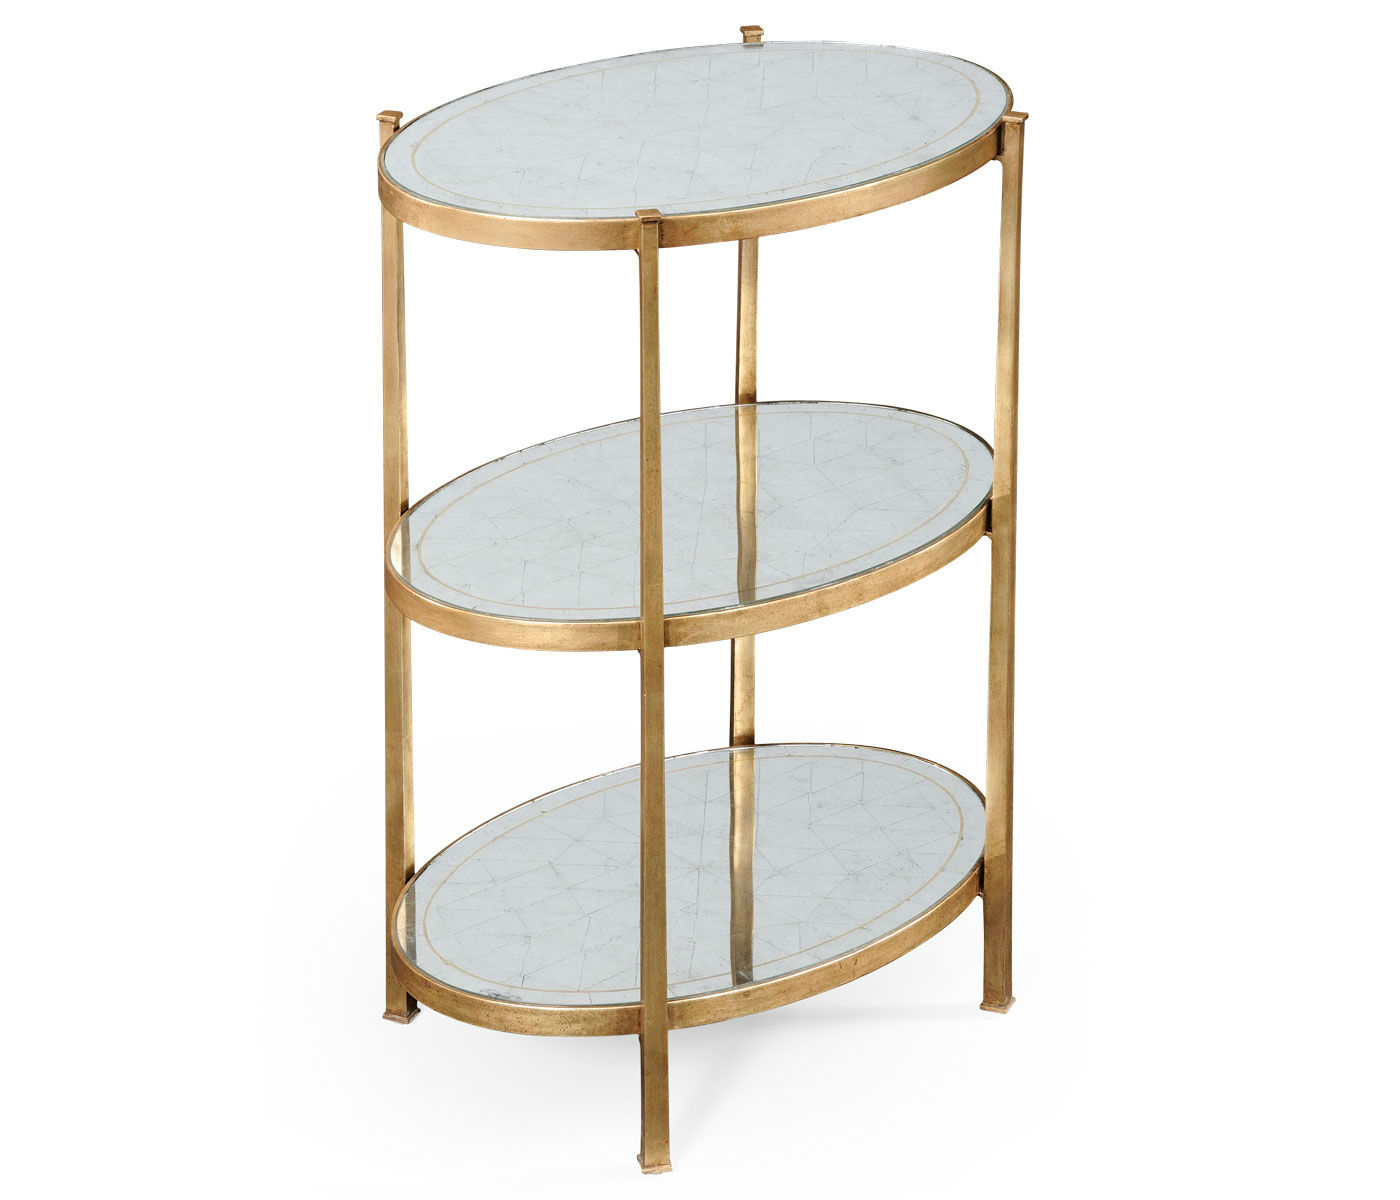 tier table tables mirrored side tiered metal accent elegant tall antiqued gold gilded partner end console coffee available hospitality white round nesting vintage scandinavian